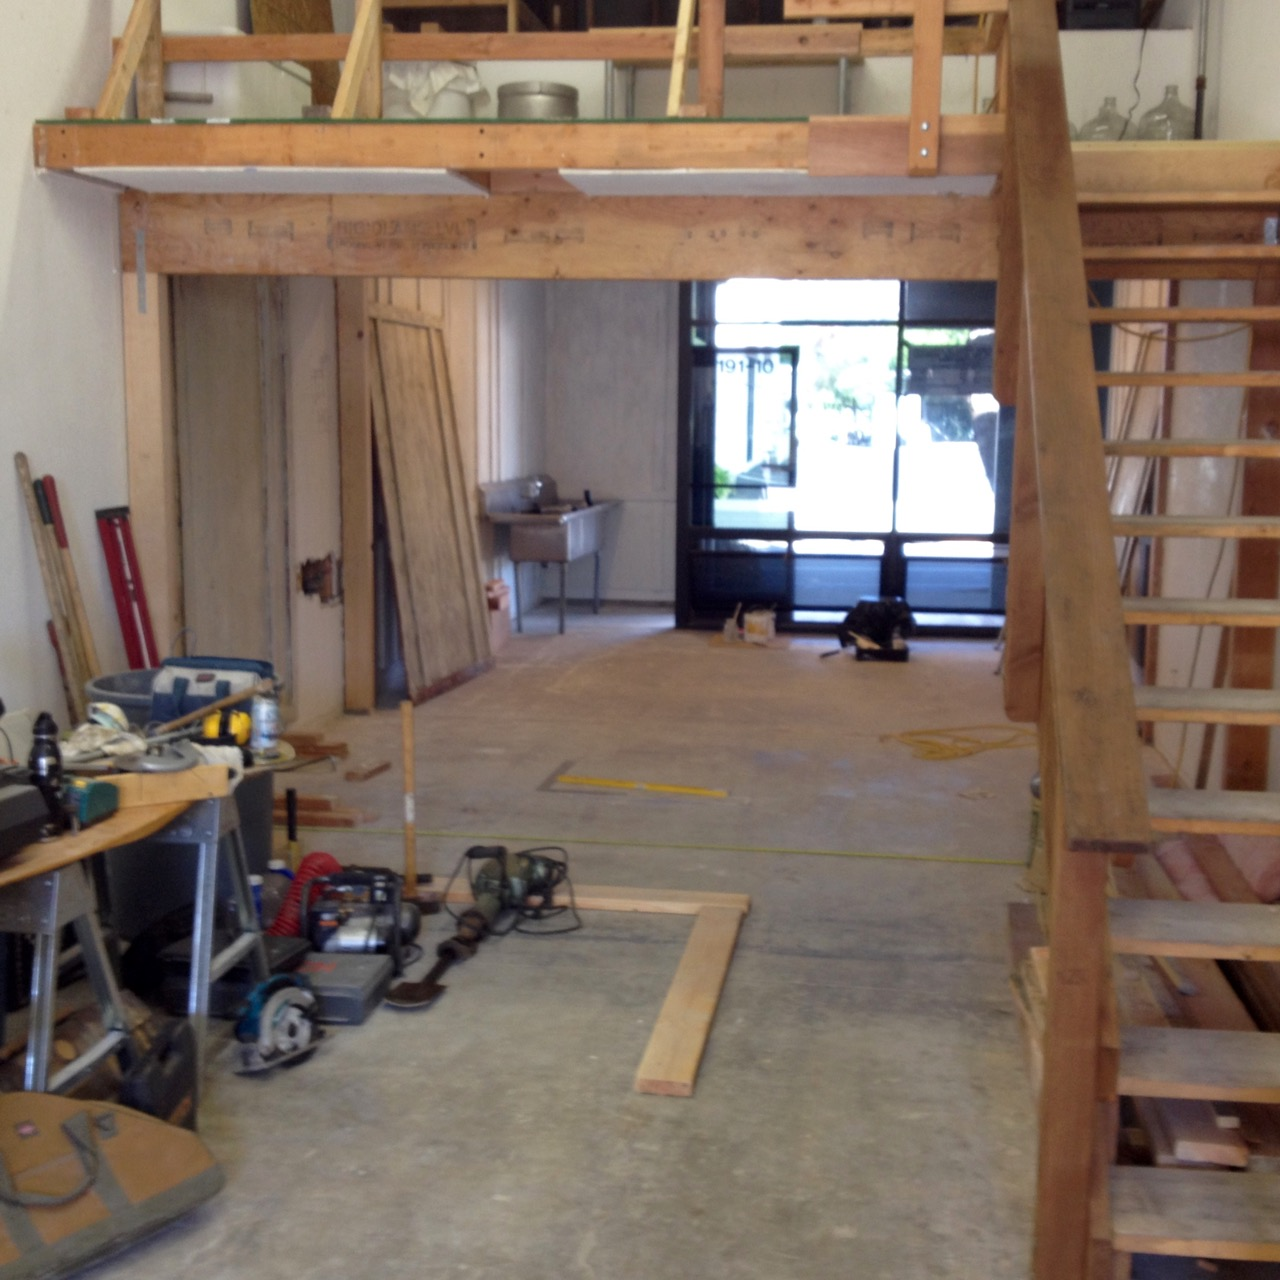 Making space: Walls removed and existing loft area supported.